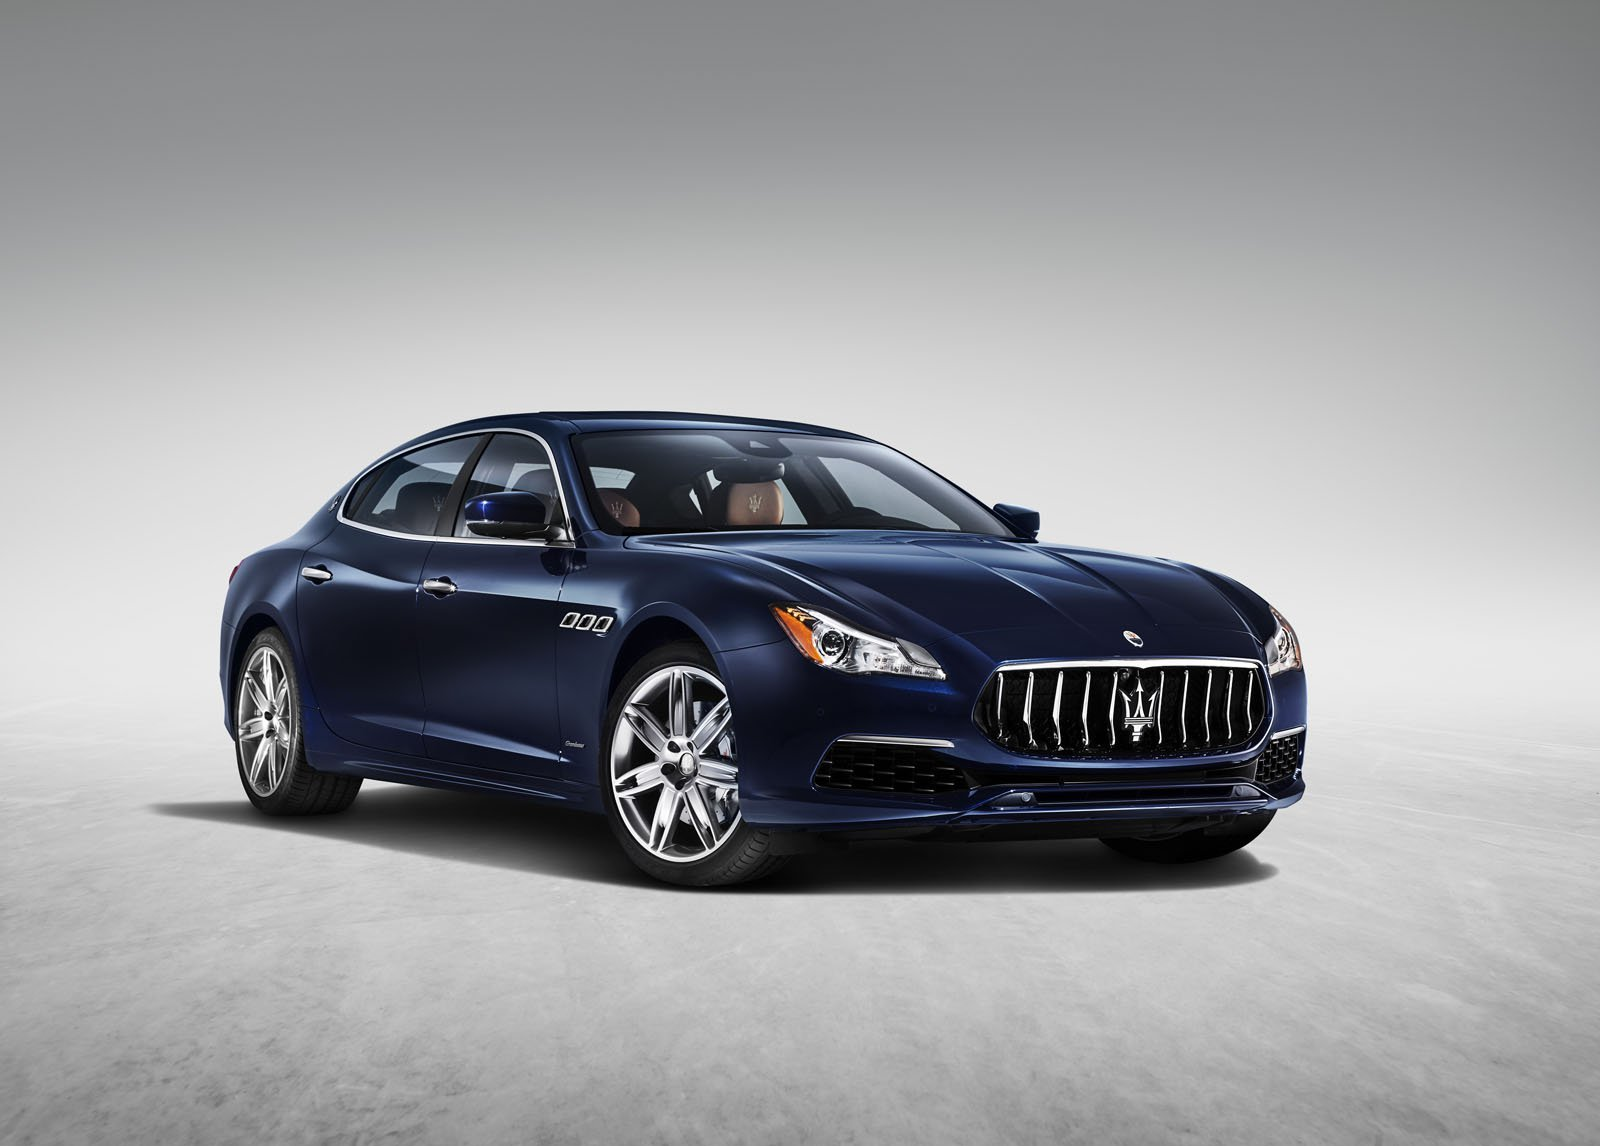 Maserati Engineering Boss Confirms EV Before 2020